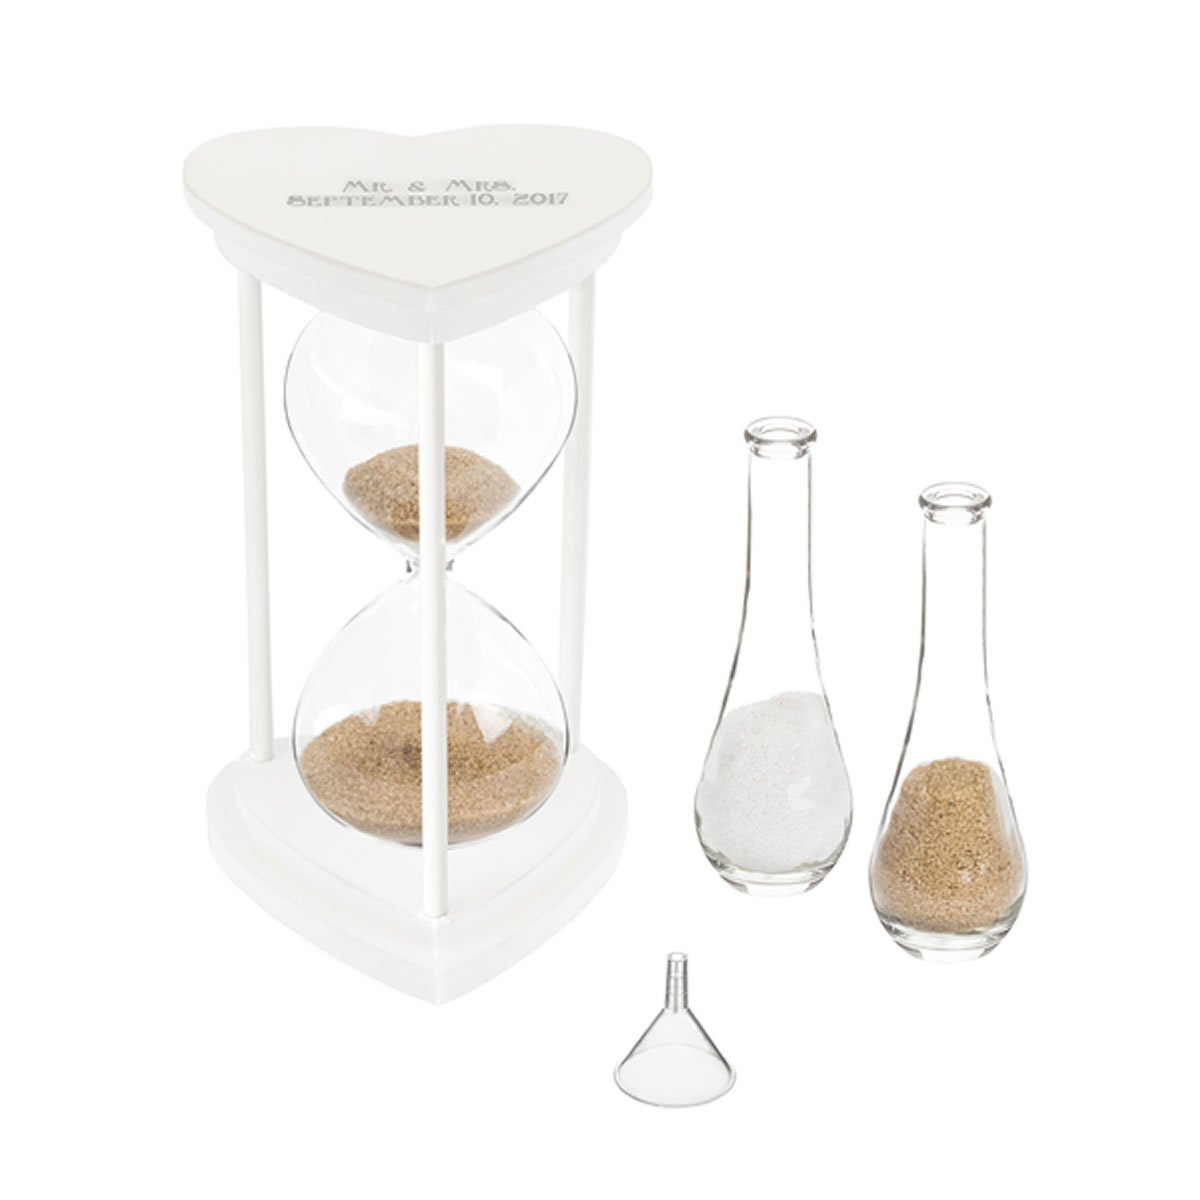 Cathy's Concepts Sands of Time Hourglass Unity Sand Ceremony Candle Alternative (Personalized Floral Set) Cathys Concepts